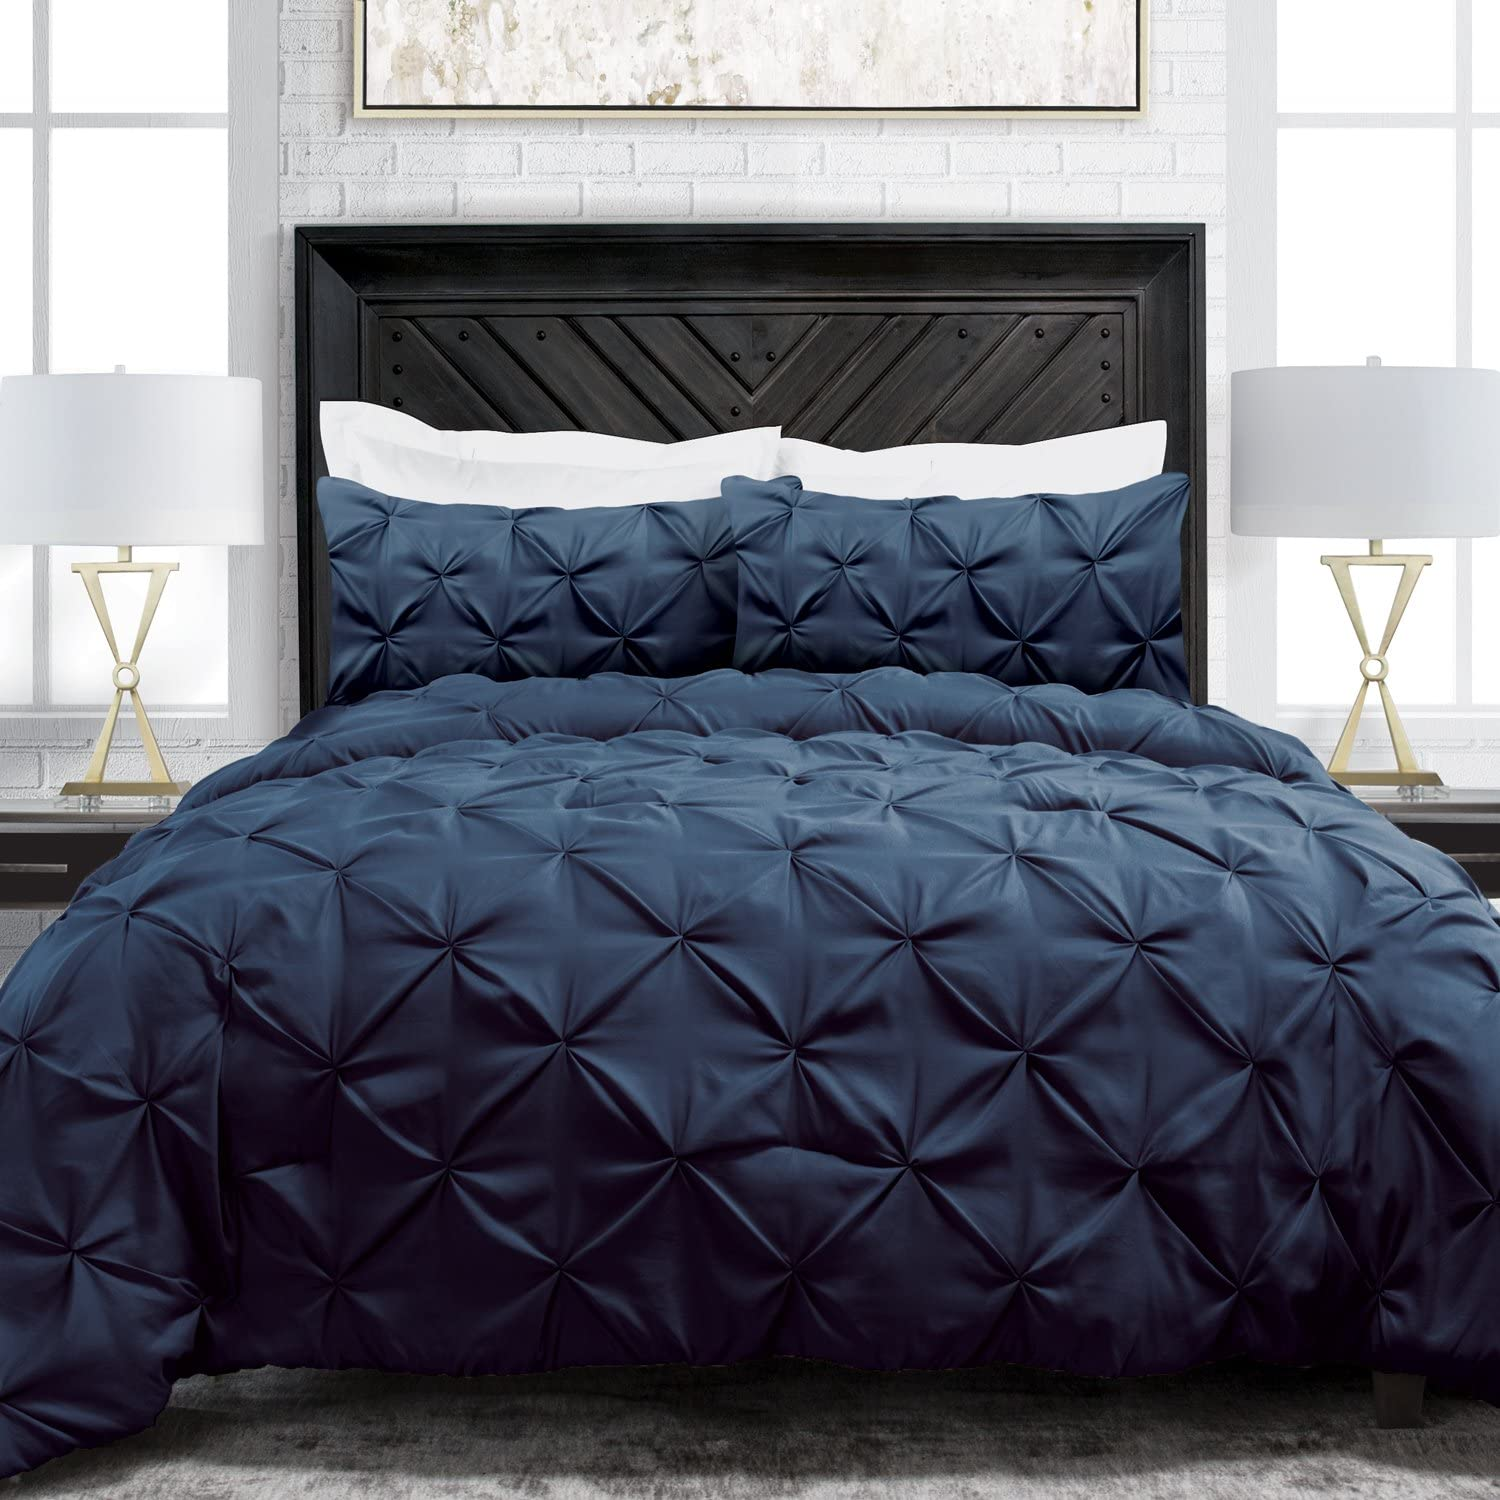 Sleep Restoration Pinch Pleat 3-Piece Luxury Goose Down Alternative Comforter Set - Premium Hypoallergenic All Season Pintuck Style Duvet Set - King/Cal King - Navy